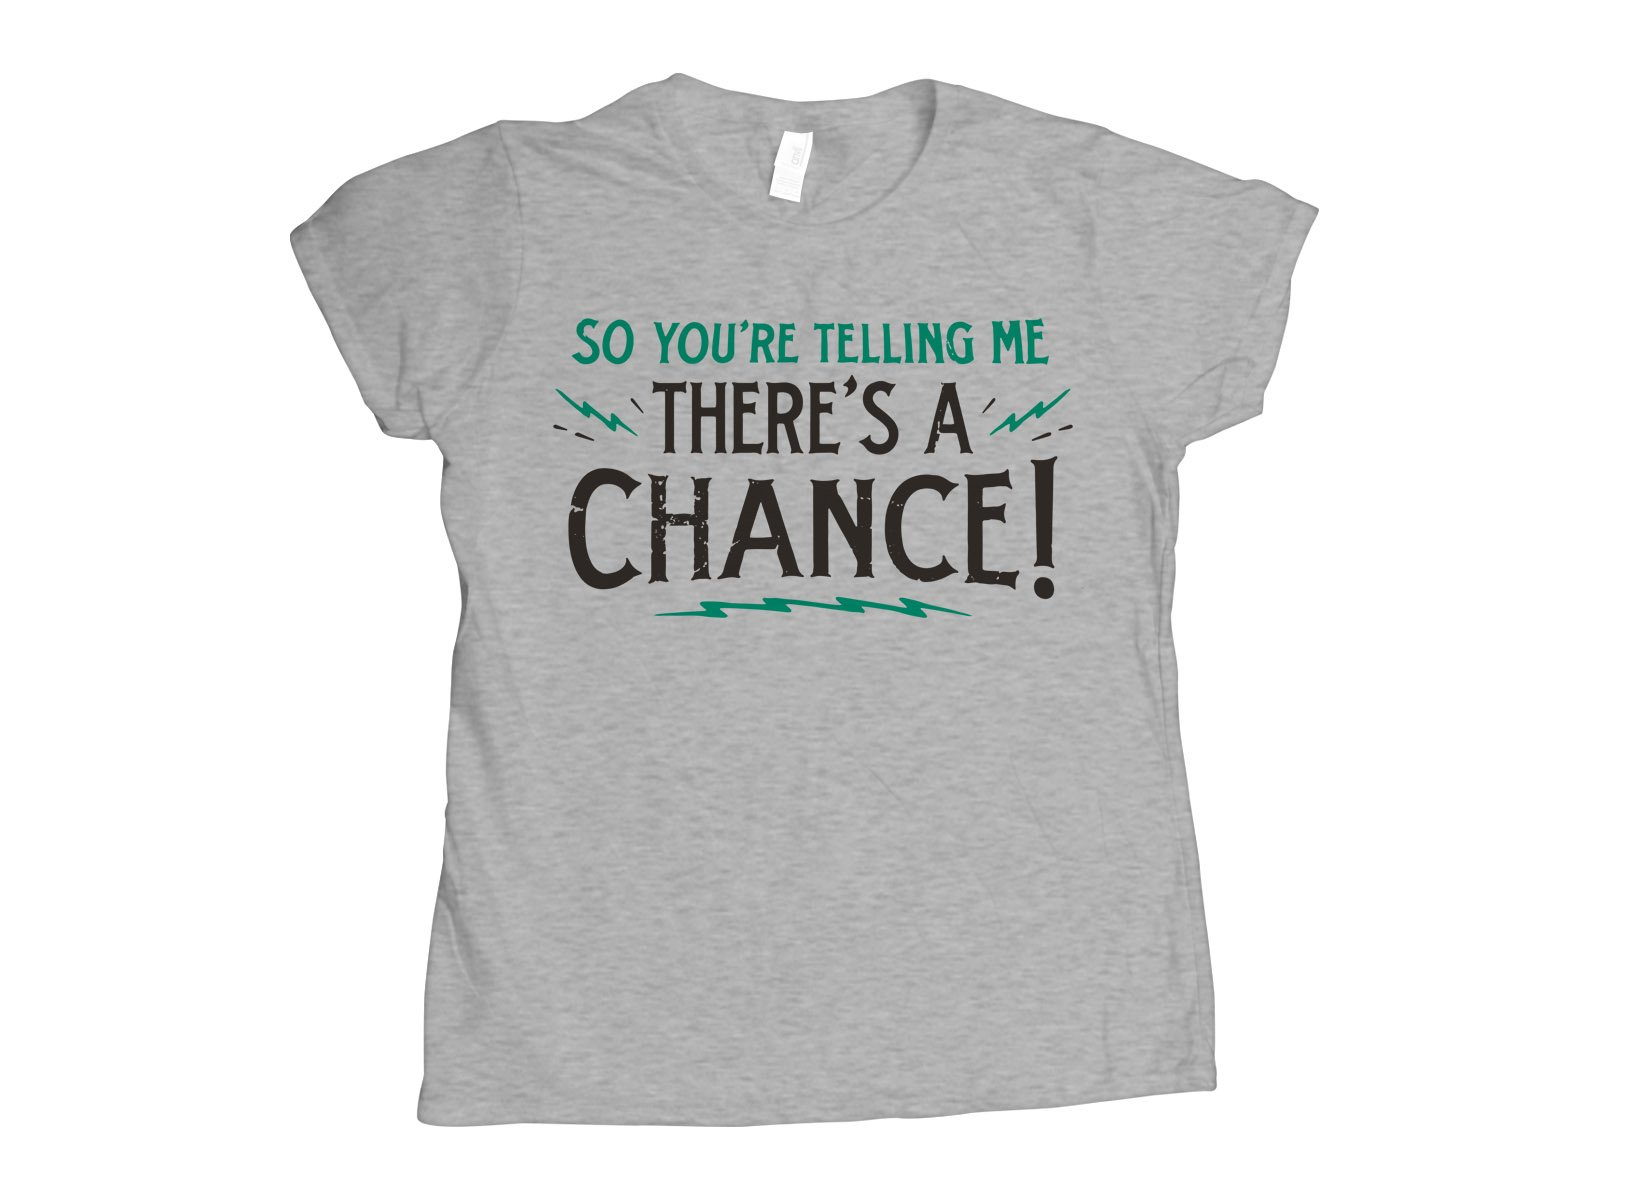 So You're Telling Me There's A Chance on Womens T-Shirt